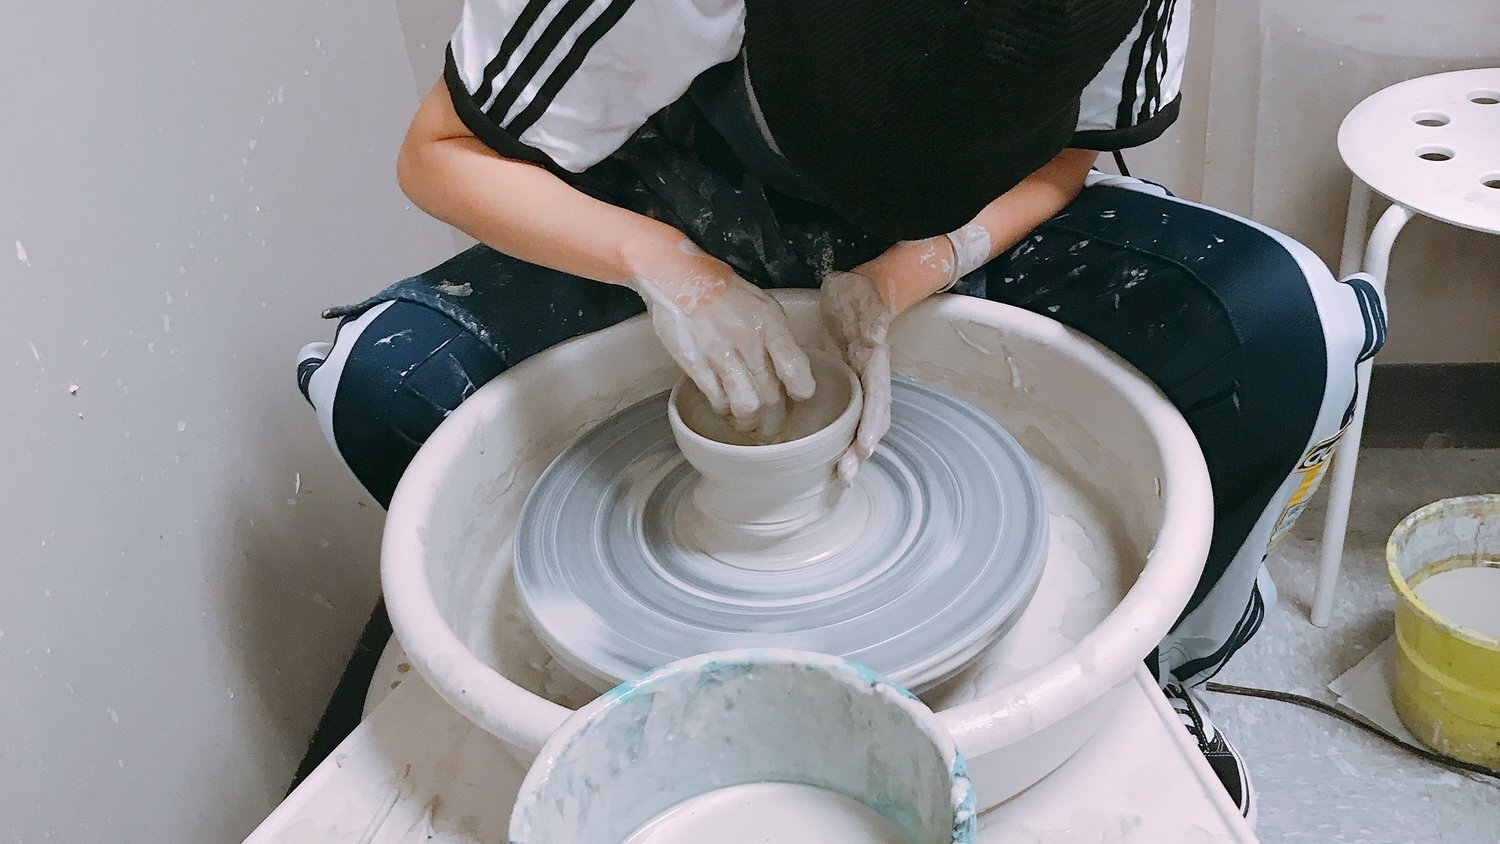 CERAMICS CLASS - Students will learn how to handmade ceramics by pinching, rolling, and shaping the clay.